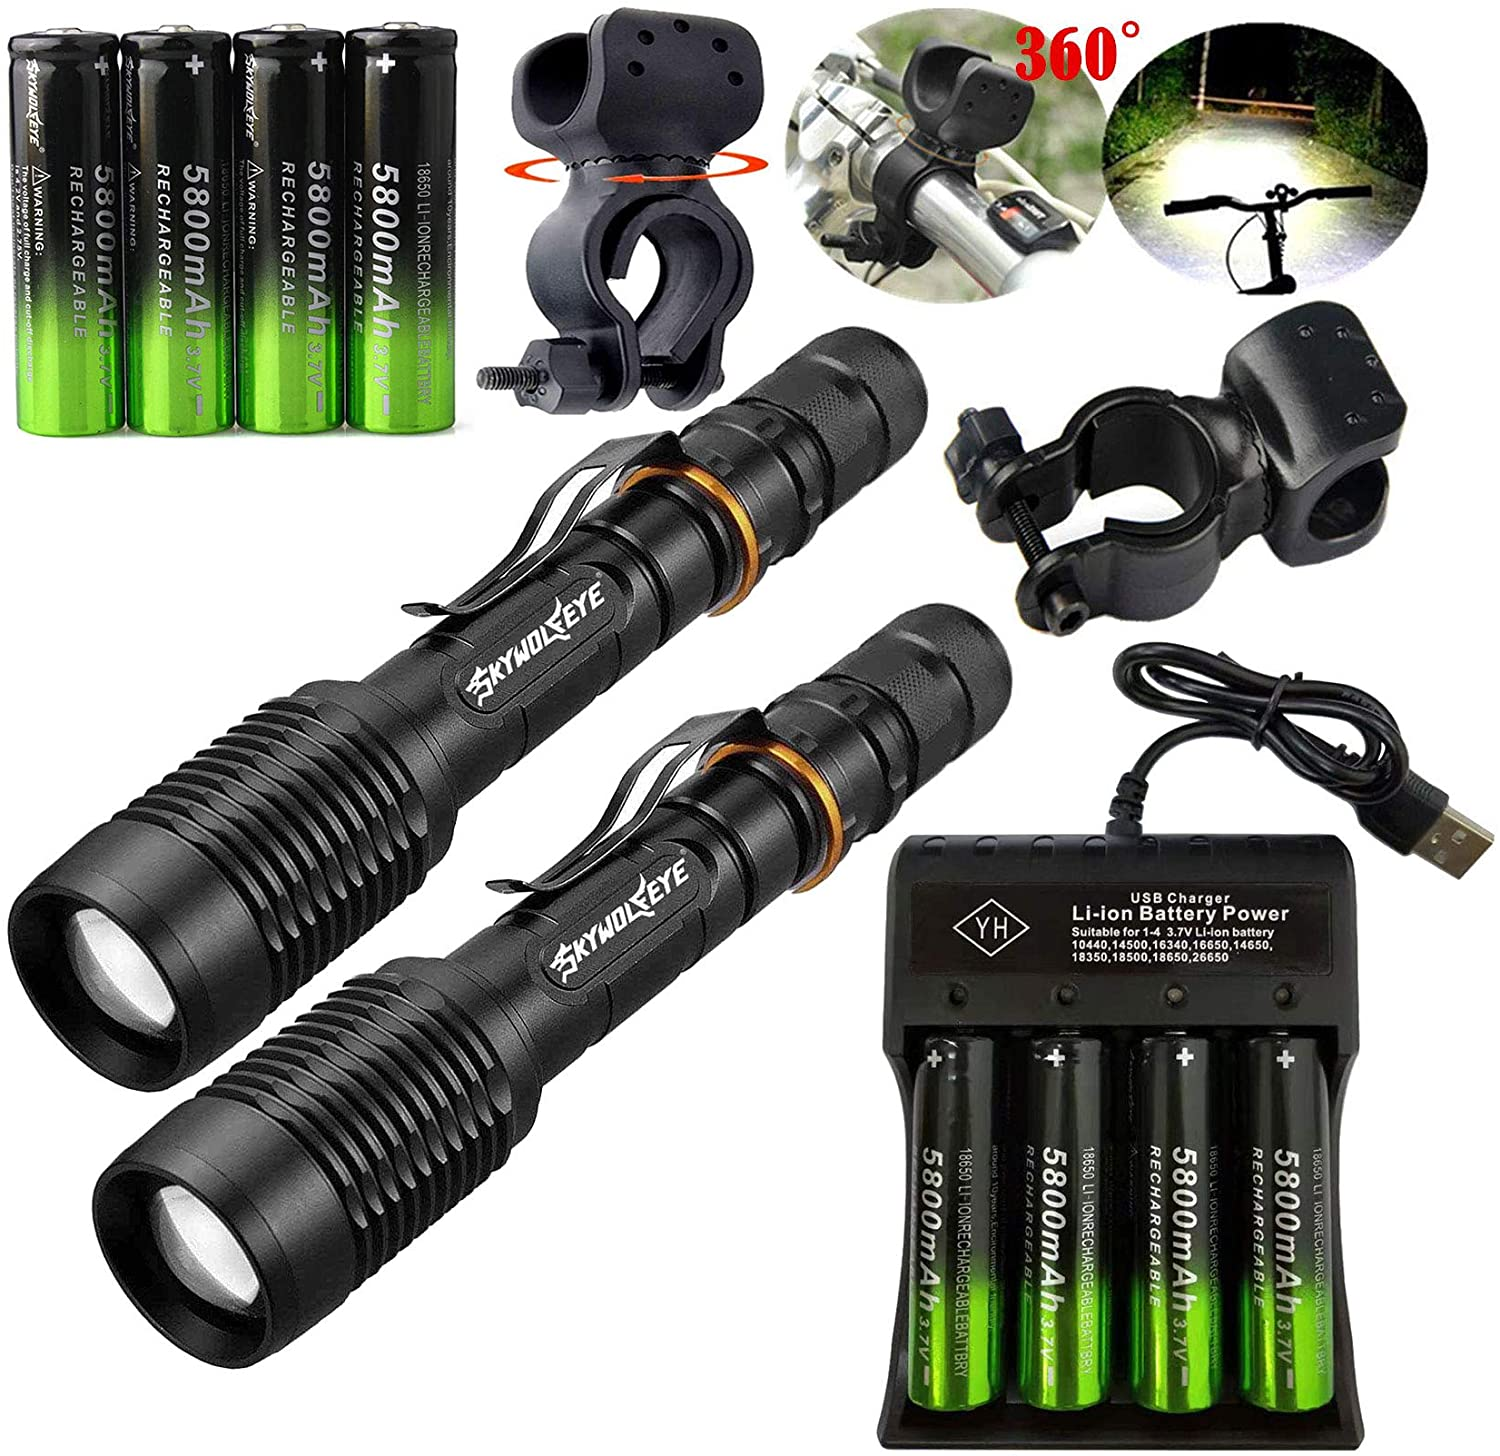 2 Set Tactical Zoomable 350000LM 5 Modes Portable LED 18650 Flashlight 5800mAh Rechargeable Batteries 4 Slots USB Universal Smart Battery Chargers Bike clip for Camping Hiking Running Outdoor